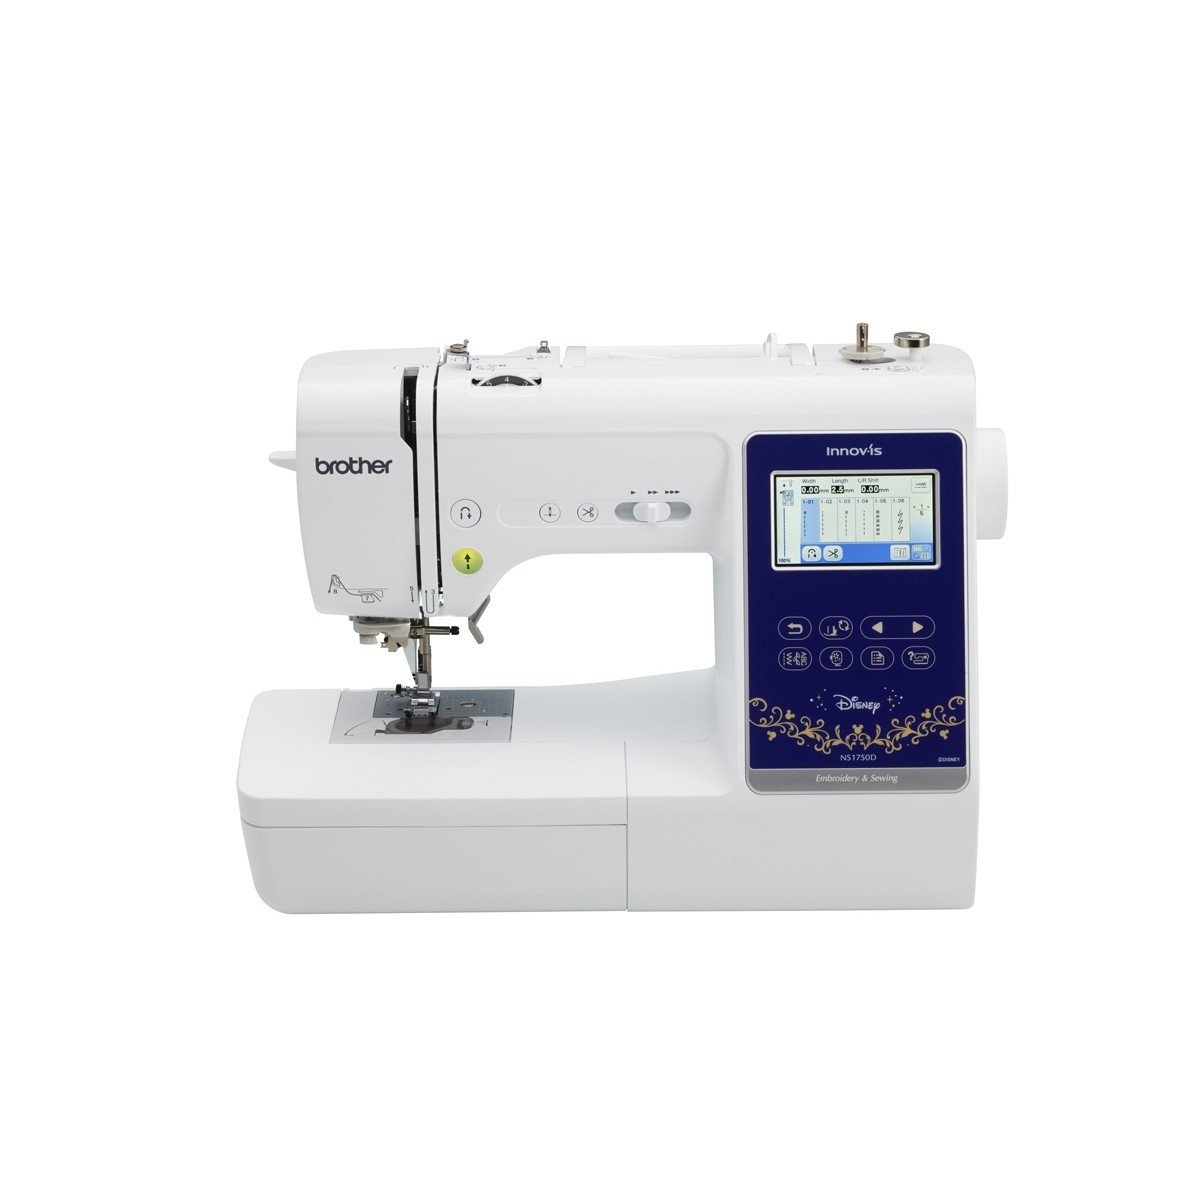 Embroidery Sewing Machine Unique Brother Innov is Ns1750d Sewing Quilting & Embroidery Of Wonderful 40 Images Embroidery Sewing Machine